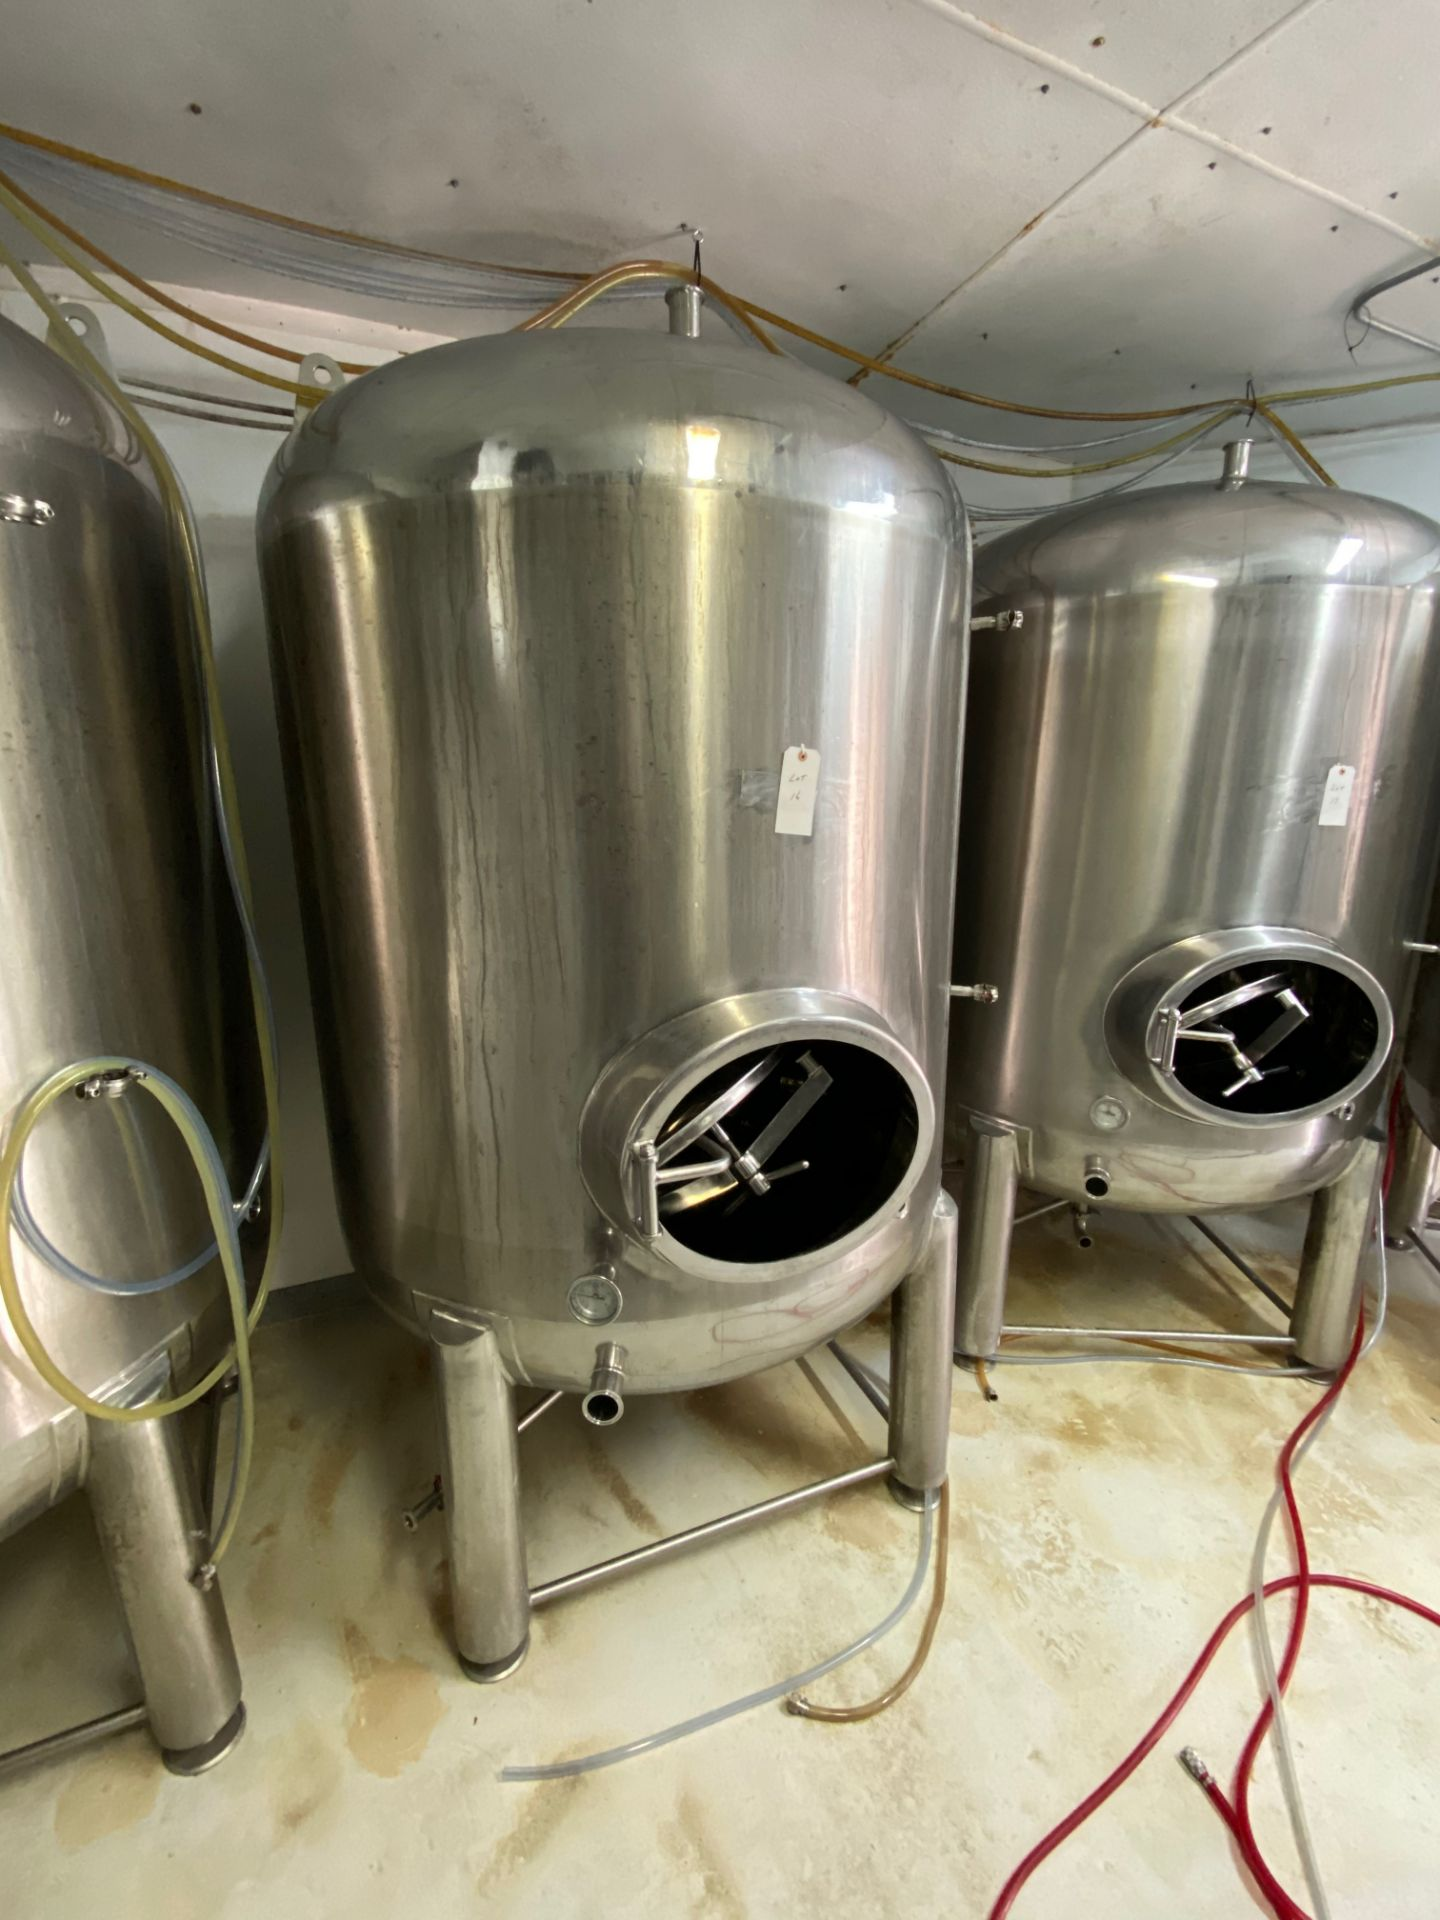 Lot 16 - 2014 Criveller 20 BBL Brite Tank, 304 Stainless Steel, Single Wall, D | Sub to Bulk | Rig Fee: $350